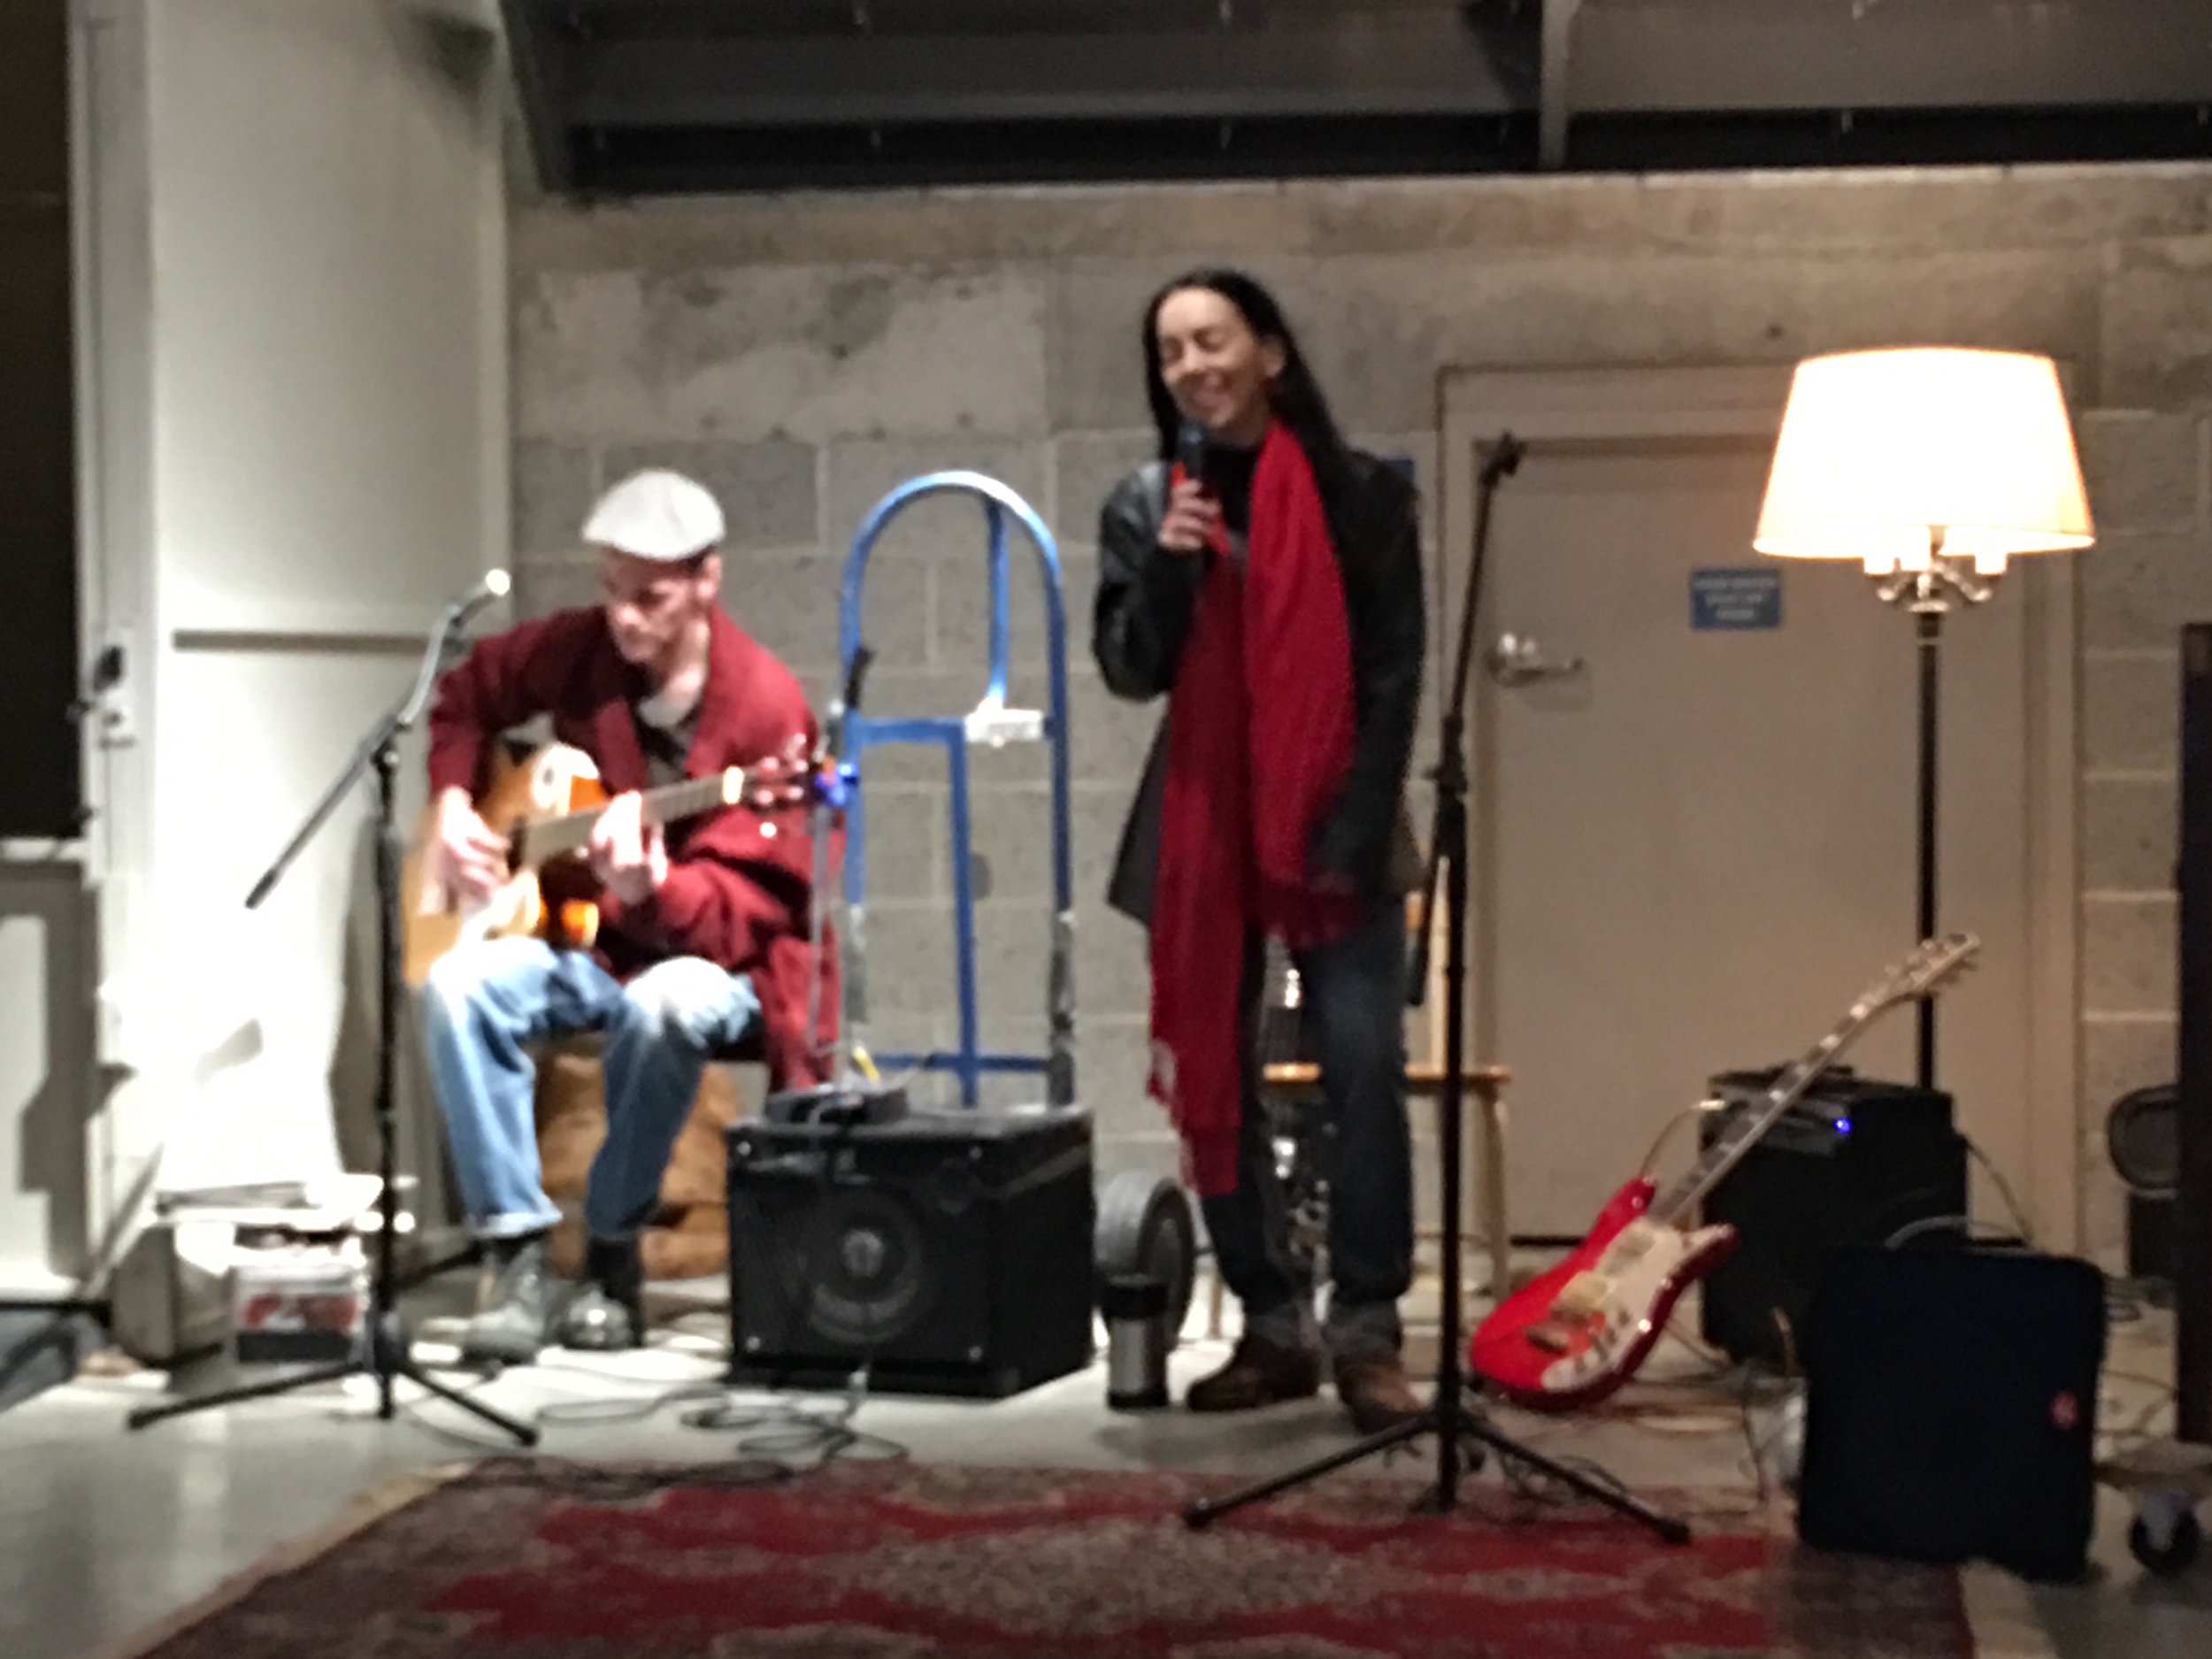 Midway Gallery Jam Session 3.14.17 - performing songs from Indie Artist Singer/Songwriter Jobe Freeman's CD 'Medallion Sessions,